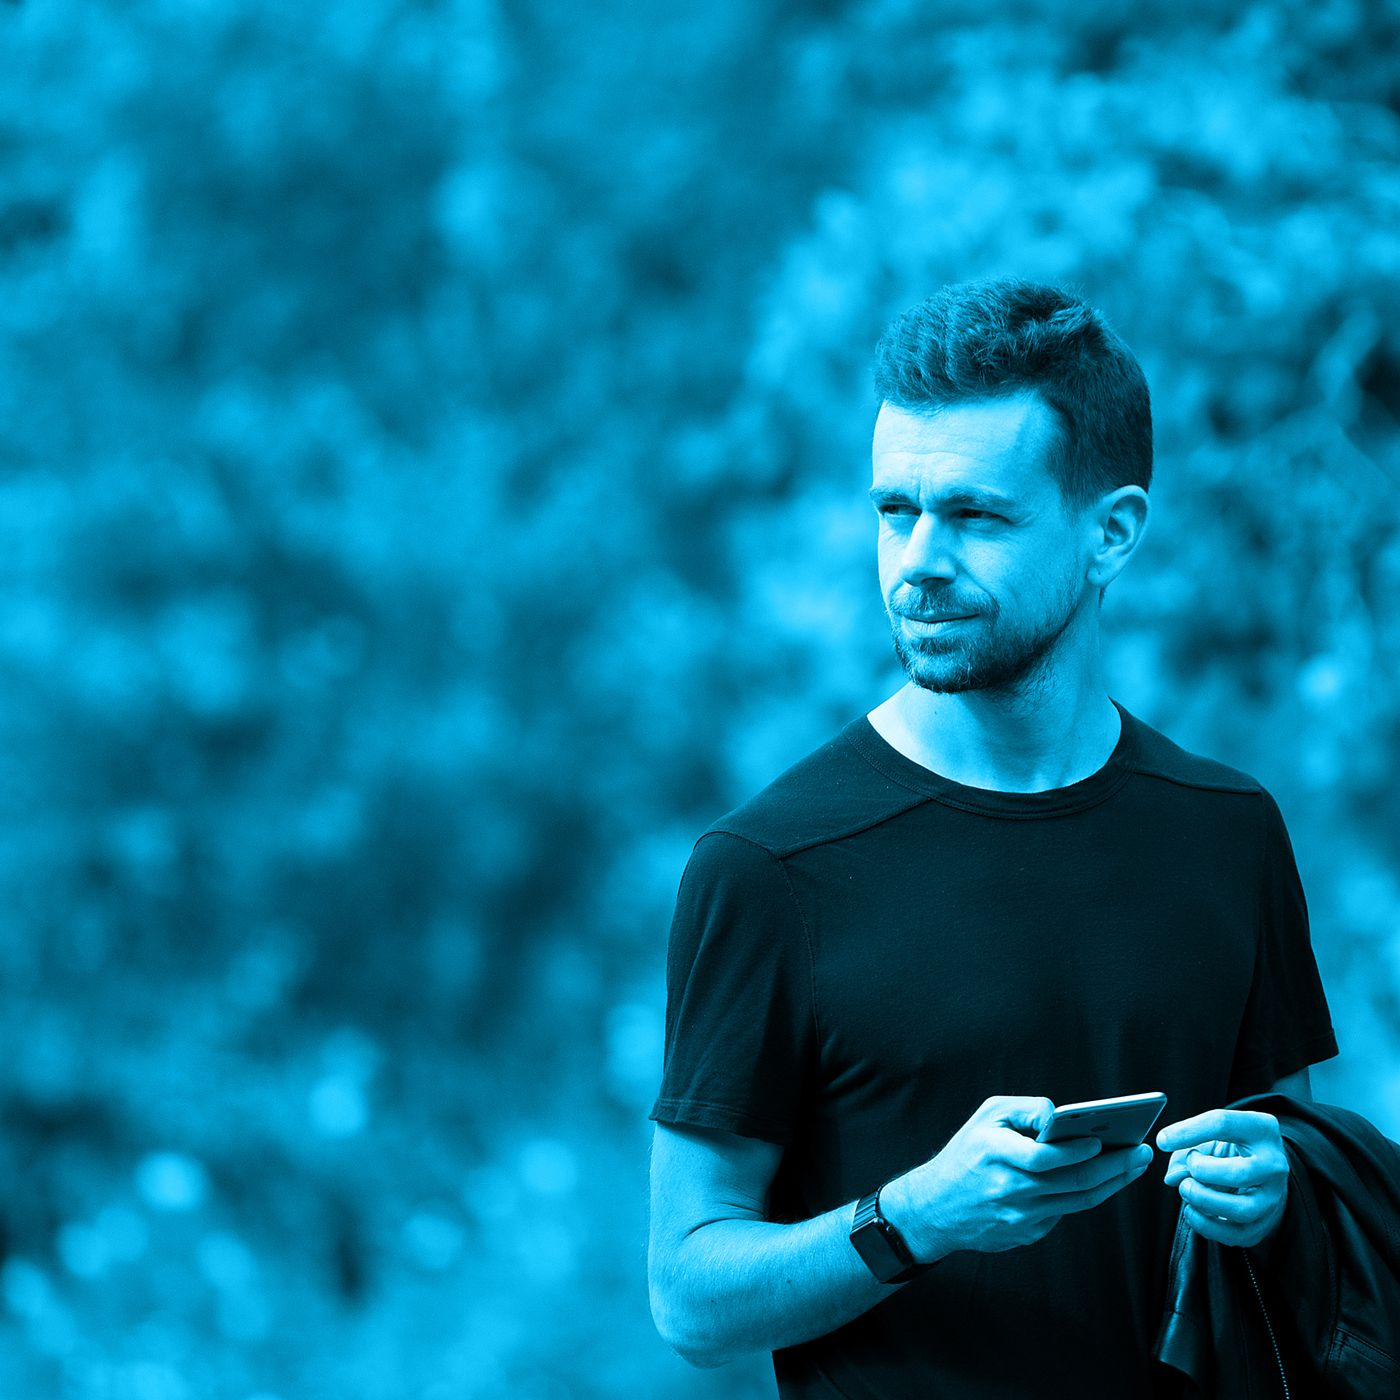 Jack Dorsey S Two Years As Twitter S Ceo Have Not Saved The Company Vox